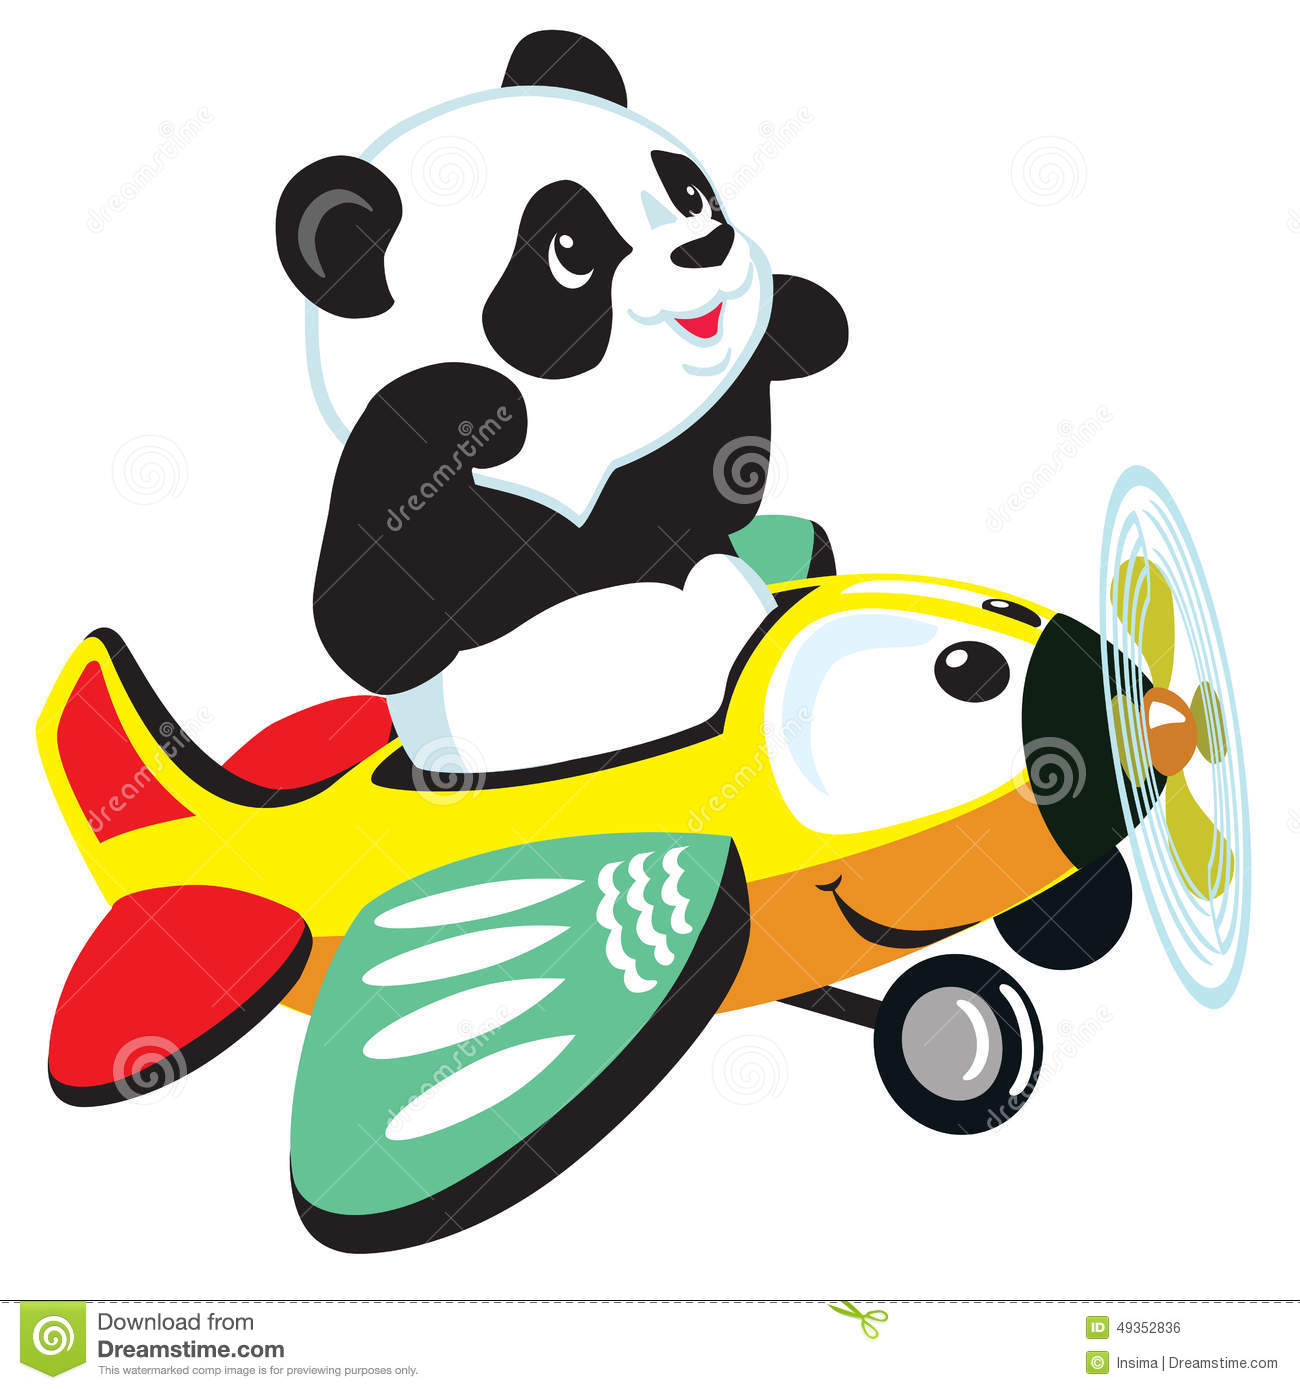 plane clipart with Stock Illustration Cartoon Panda Flying Plane Bear Isolated Image Little Kids Image49352836 on Solideconeface likewise Stock Illustration Cartoon Panda Flying Plane Bear Isolated Image Little Kids Image49352836 as well Air Conditioning furthermore Shape furthermore Moving Airplane Animation.